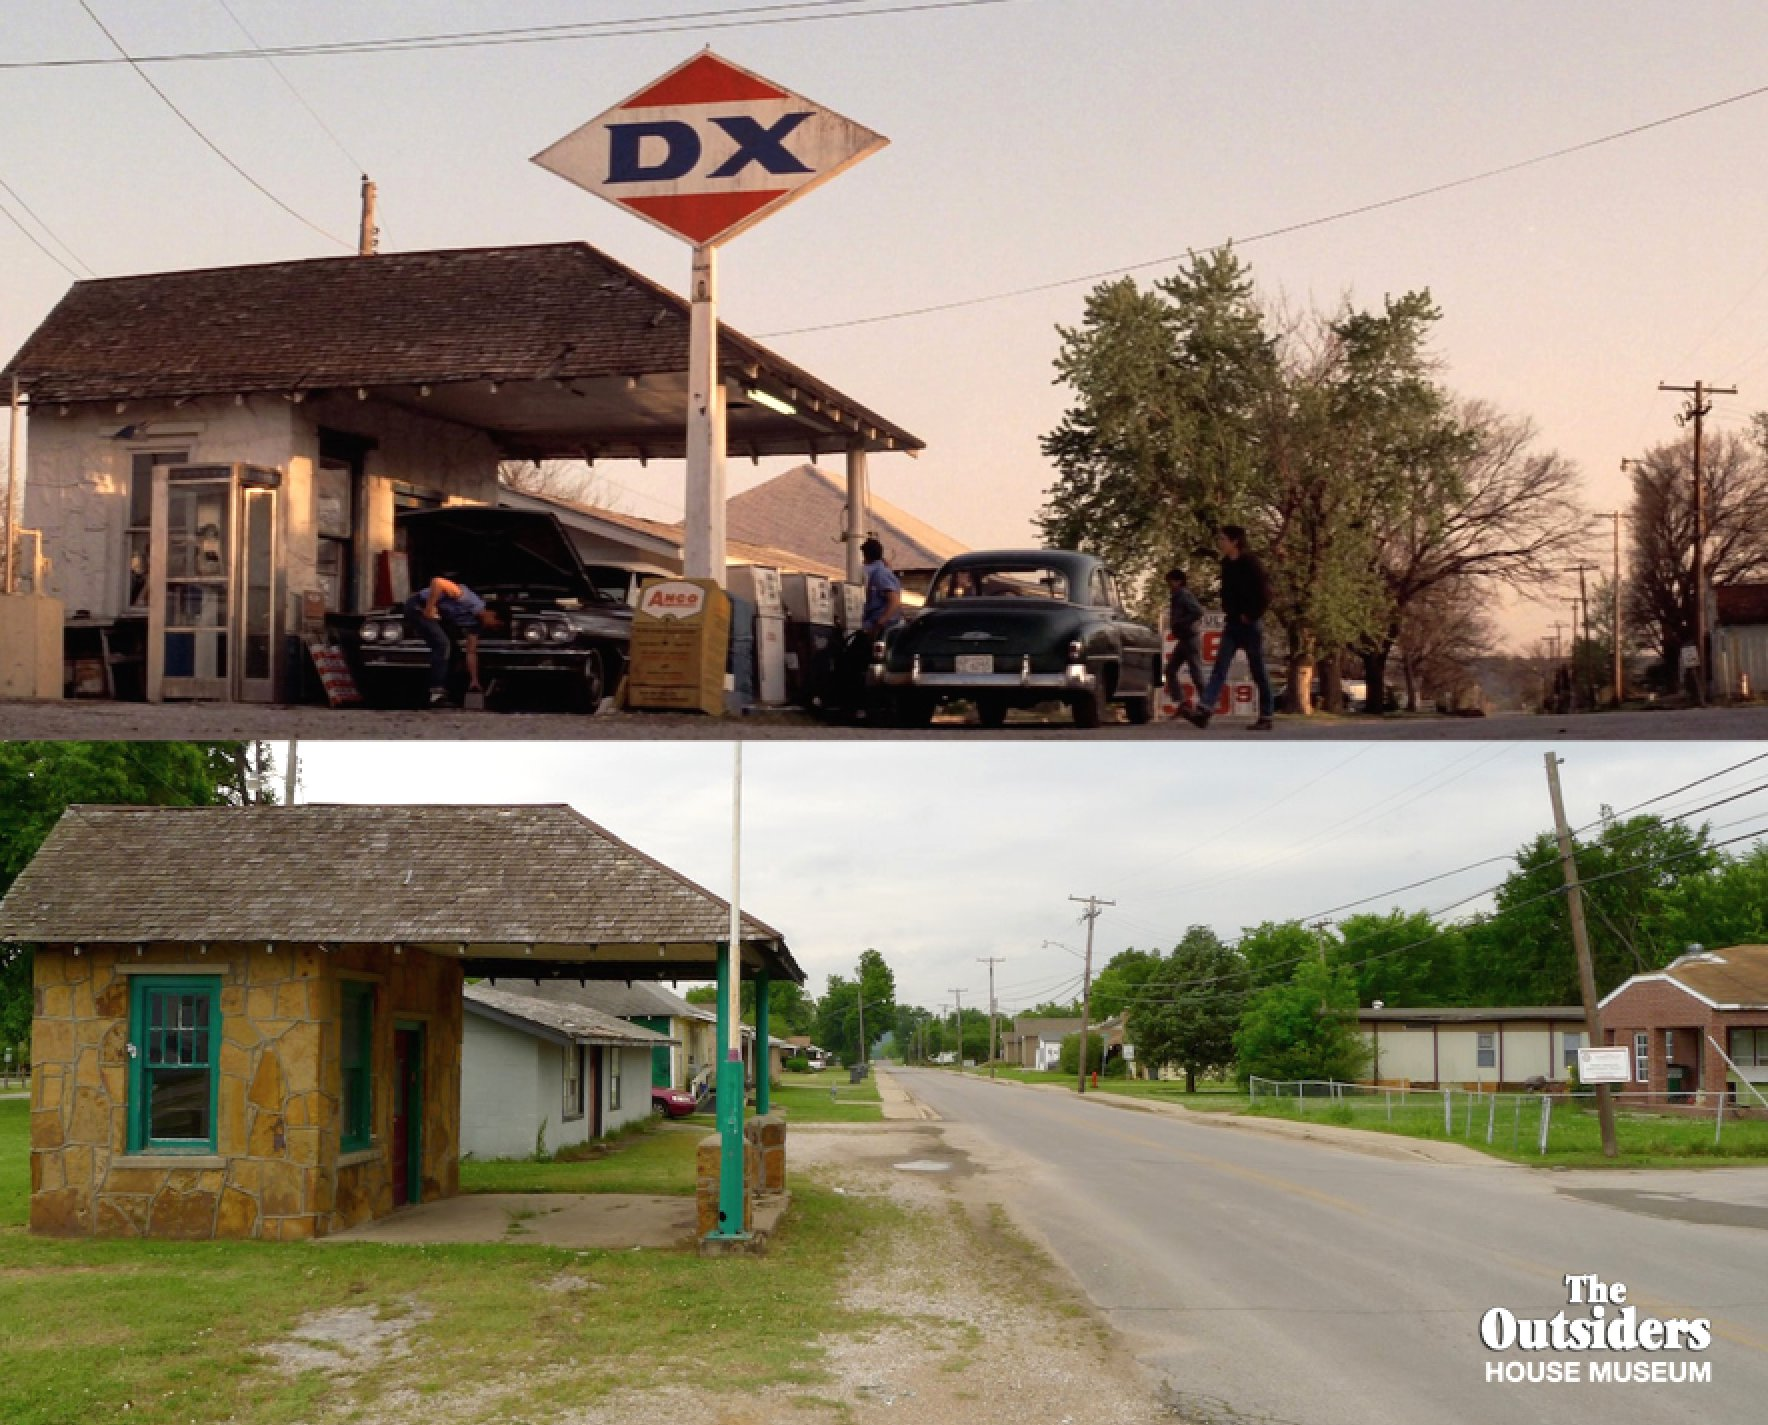 "The Outsiders House on Twitter: ""DX Gas Station Sperry ..."